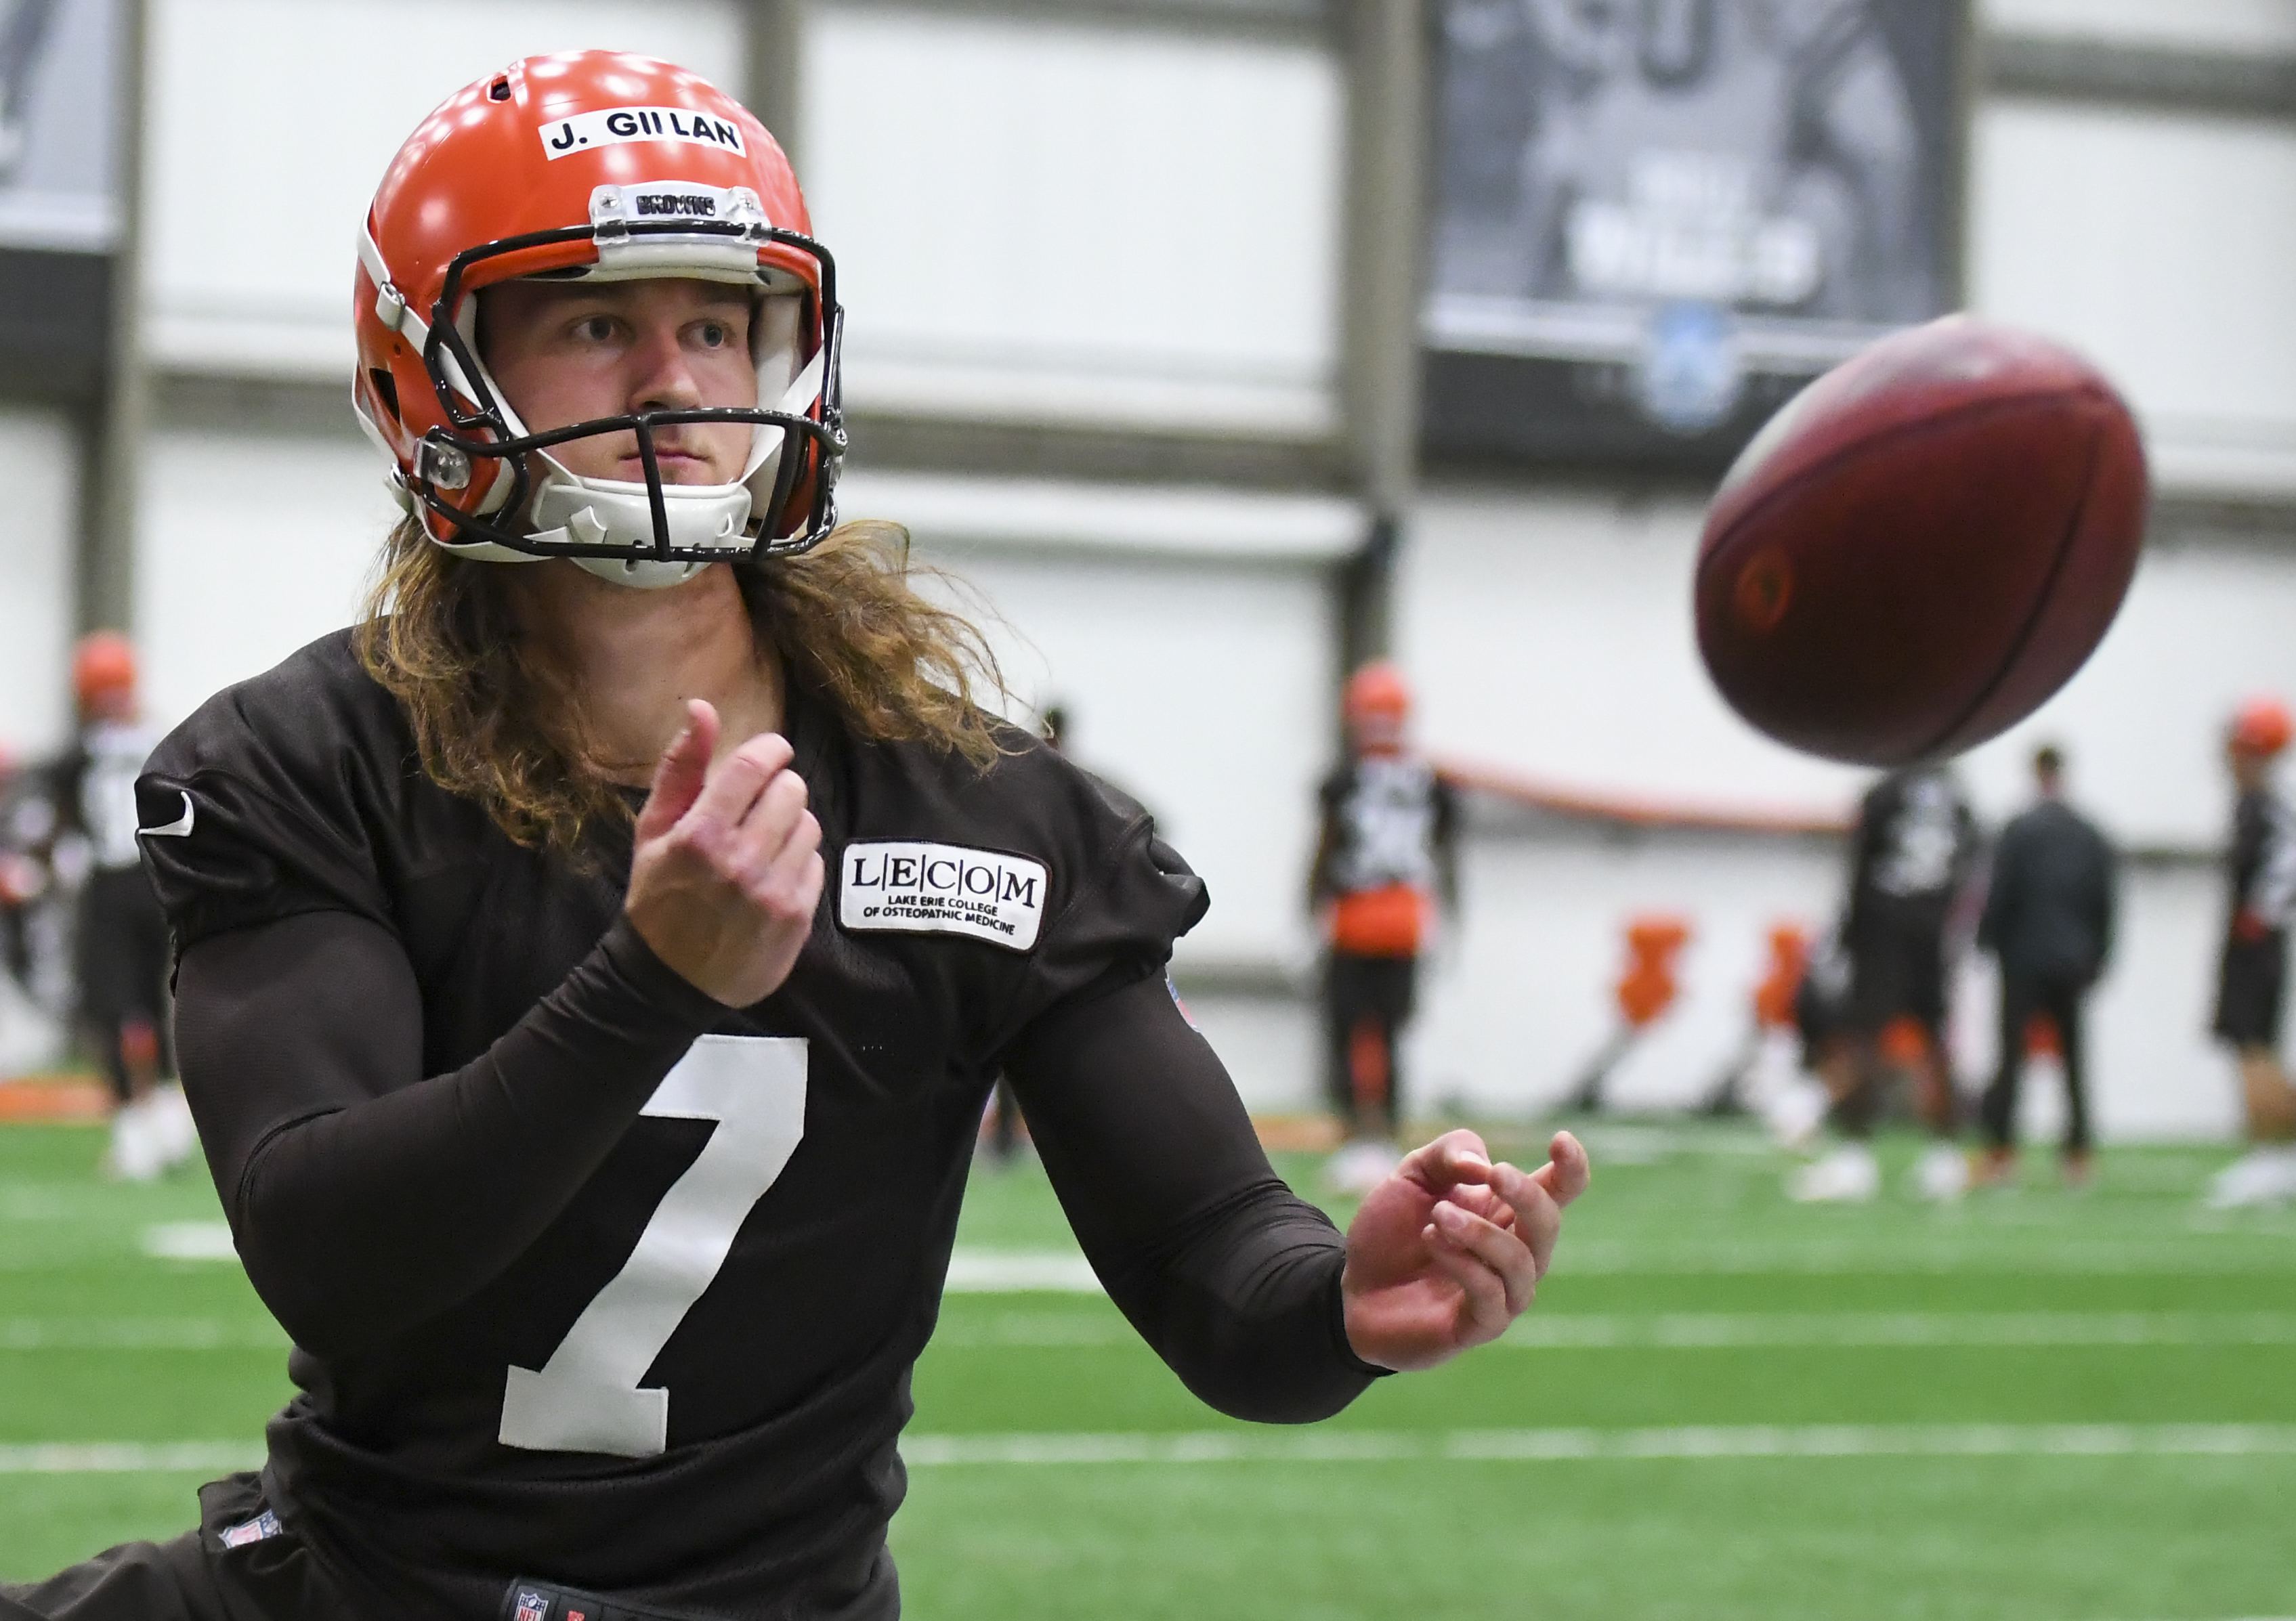 Punter Jamie Gillan #7 of the Cleveland Browns warms up on the sideline during a rookie mini camp. (Photo by: 2019 Diamond Images/Getty Images)